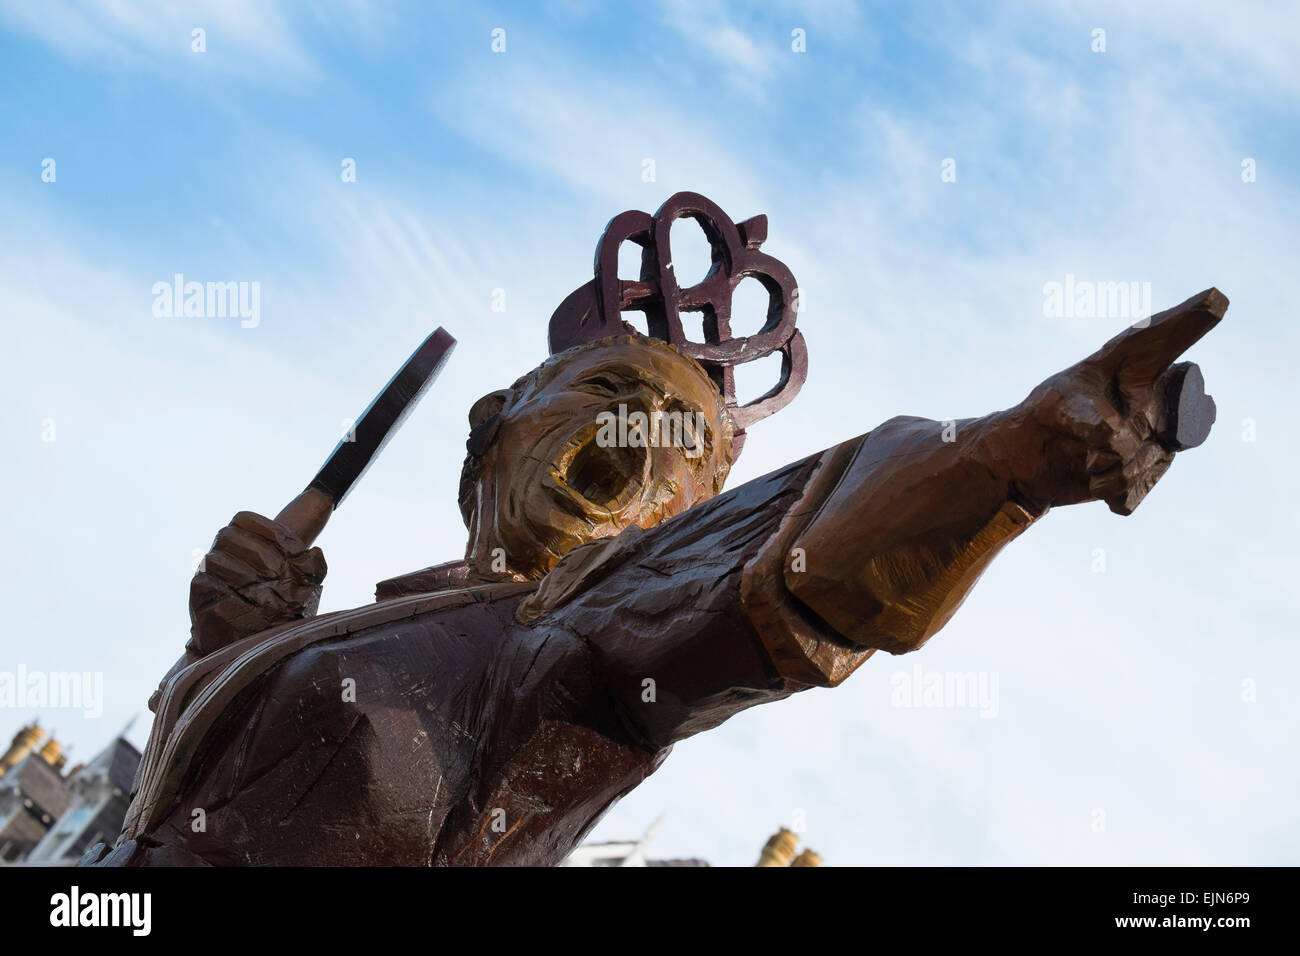 Queen of Hearts wooden statue which celebrates the town's links to Alice In Wonderland author Lewis Carroll, - Stock Image